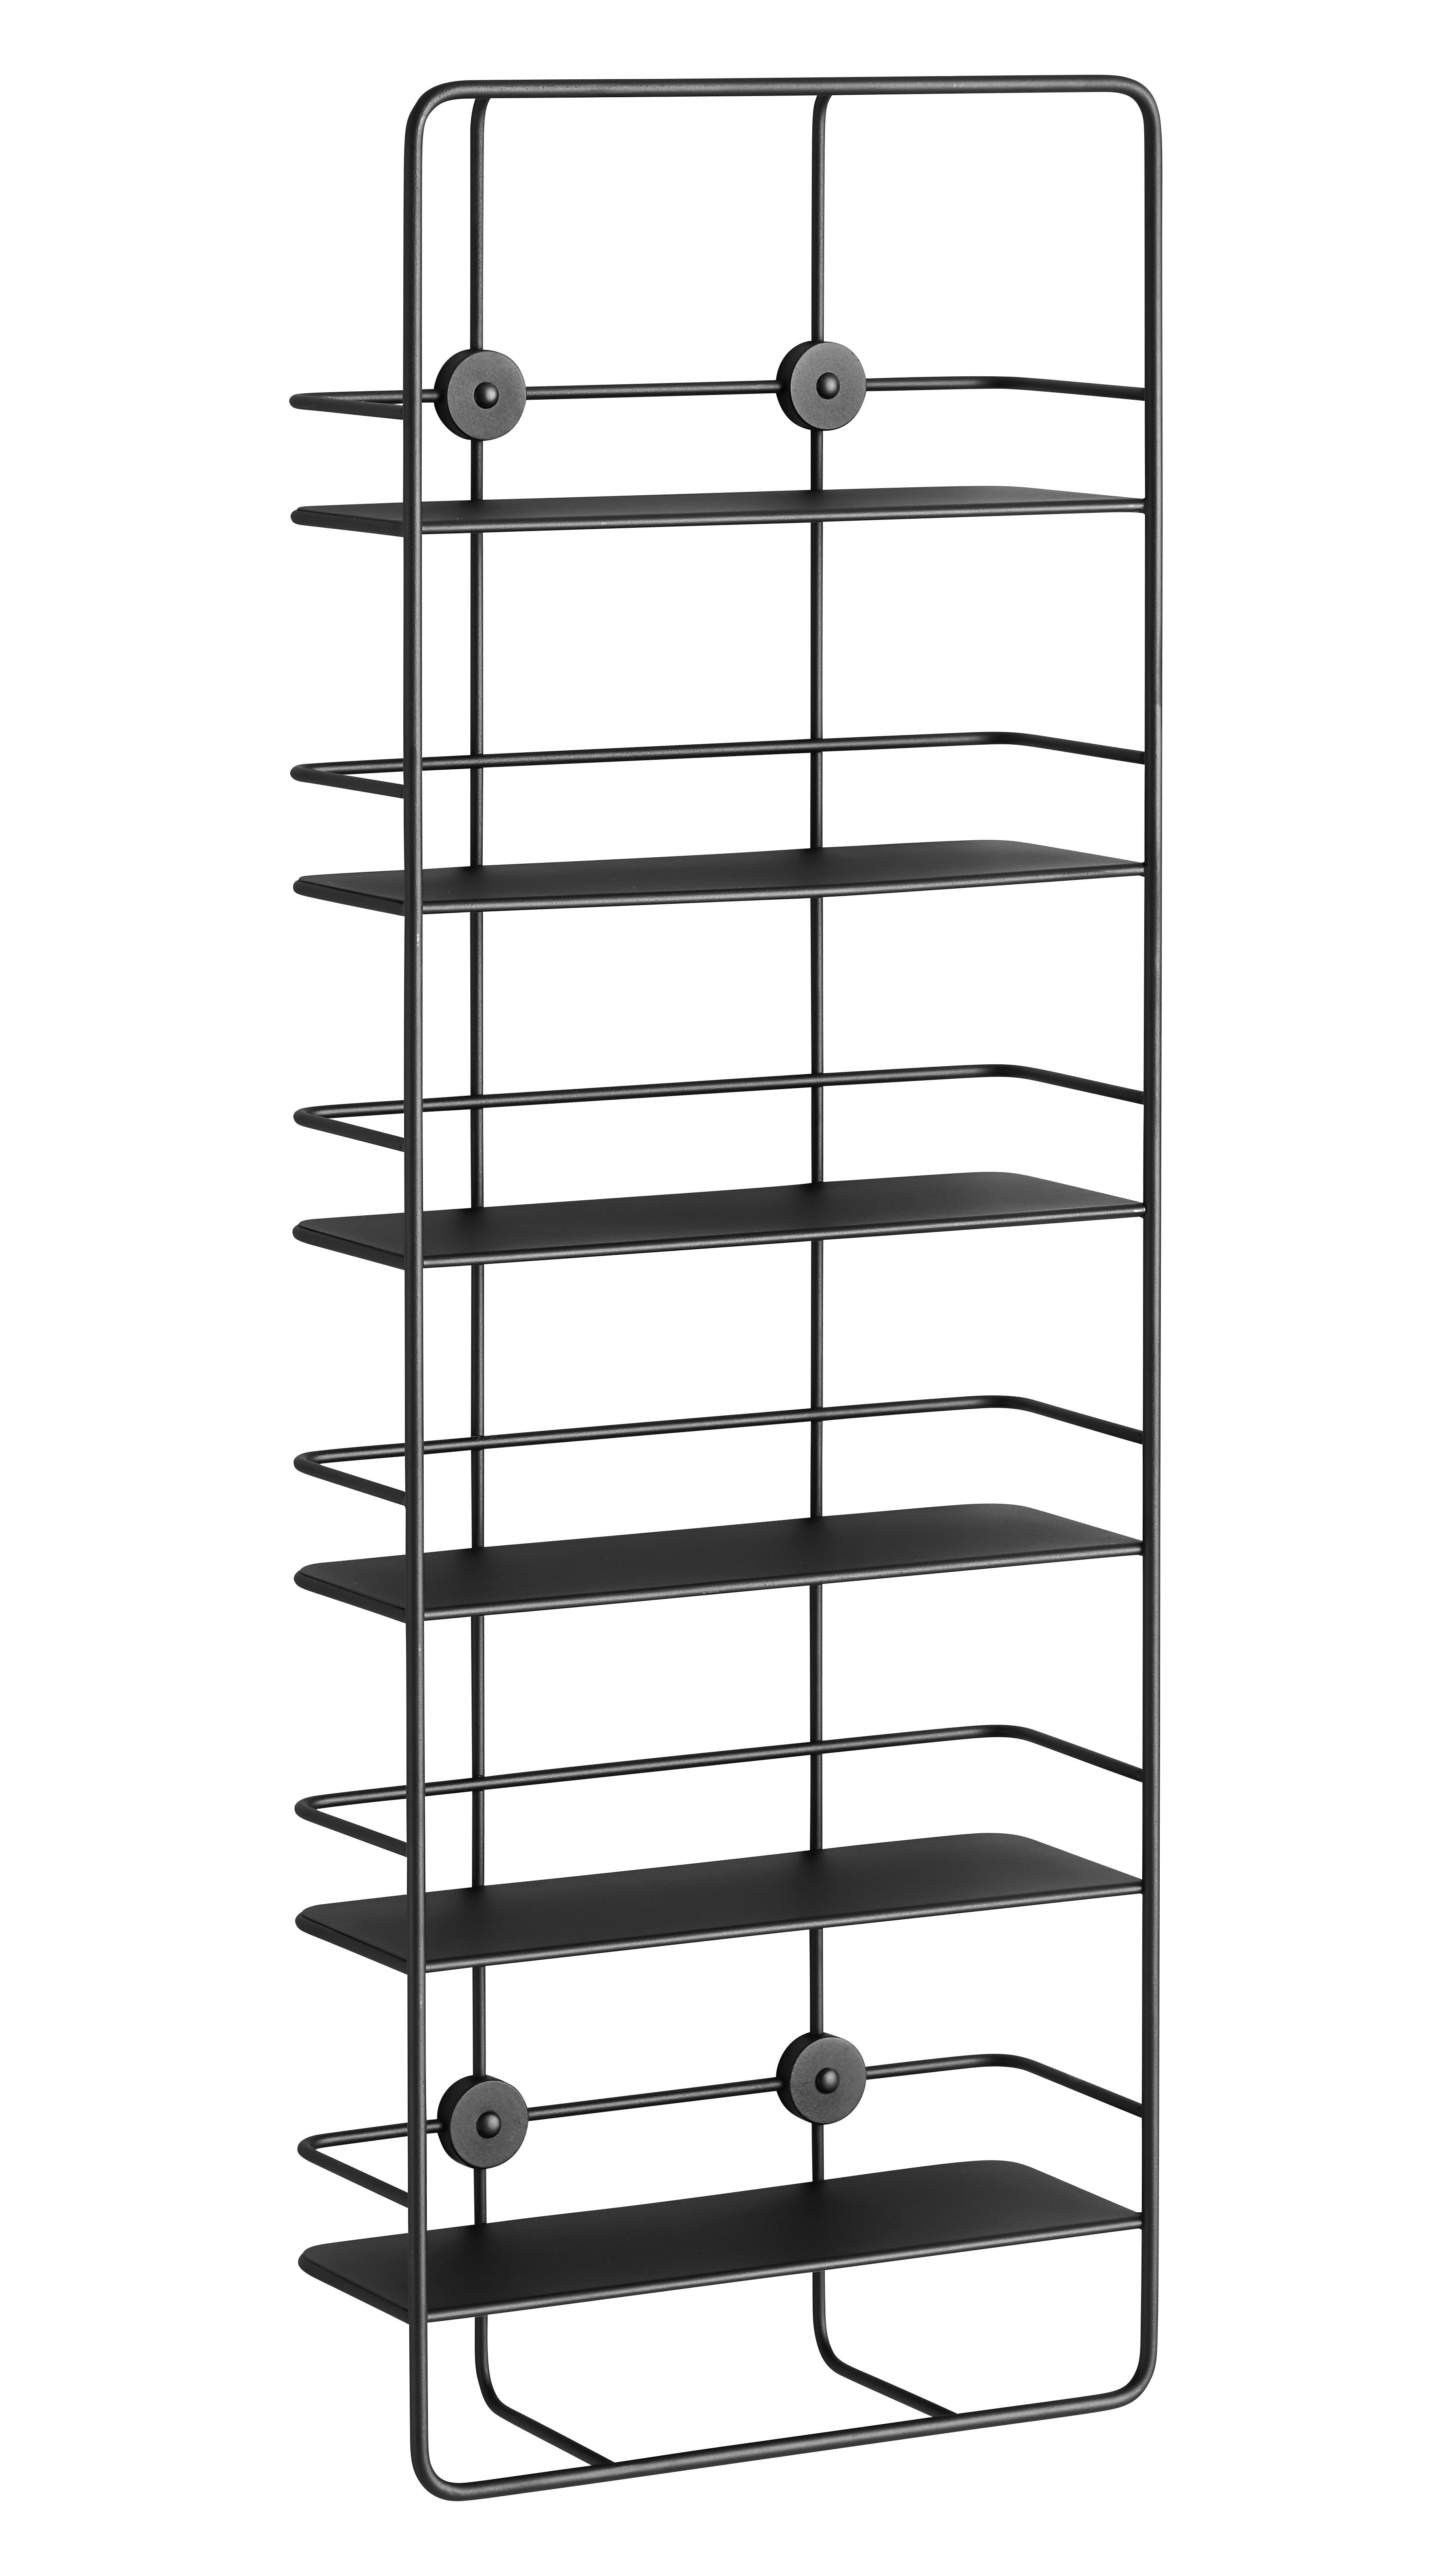 Furniture - Bookcases & Bookshelves - Coupé Shelf - Vertical - W 37 x H 103 cm by Woud - Black - Epoxy lacquered metal